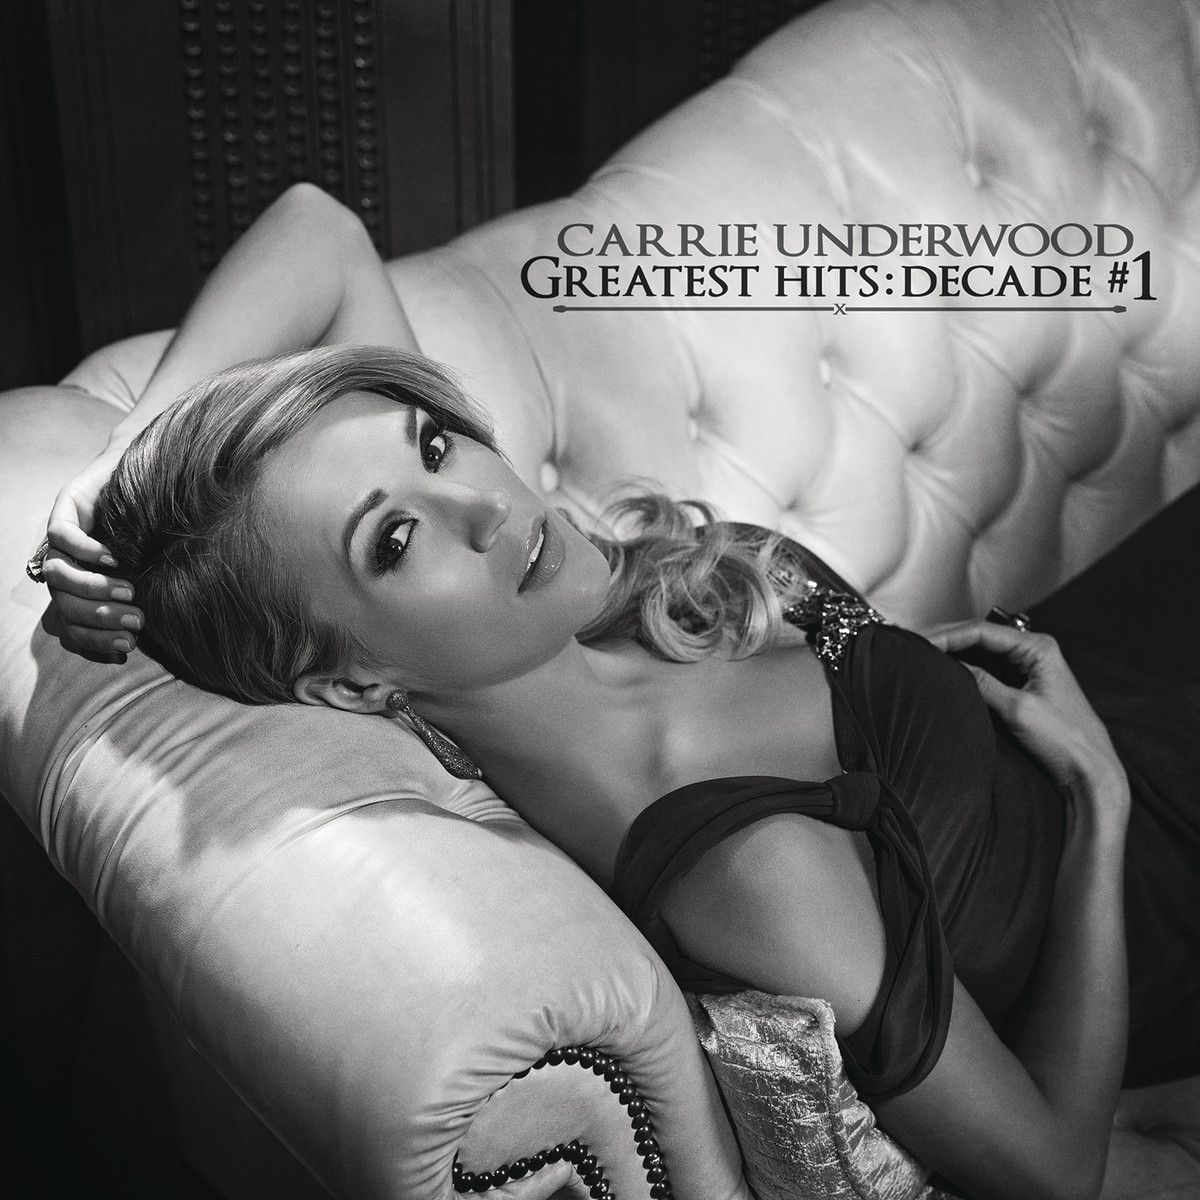 Carrie Underwood - Greatest Hits: Decade #1 album cover